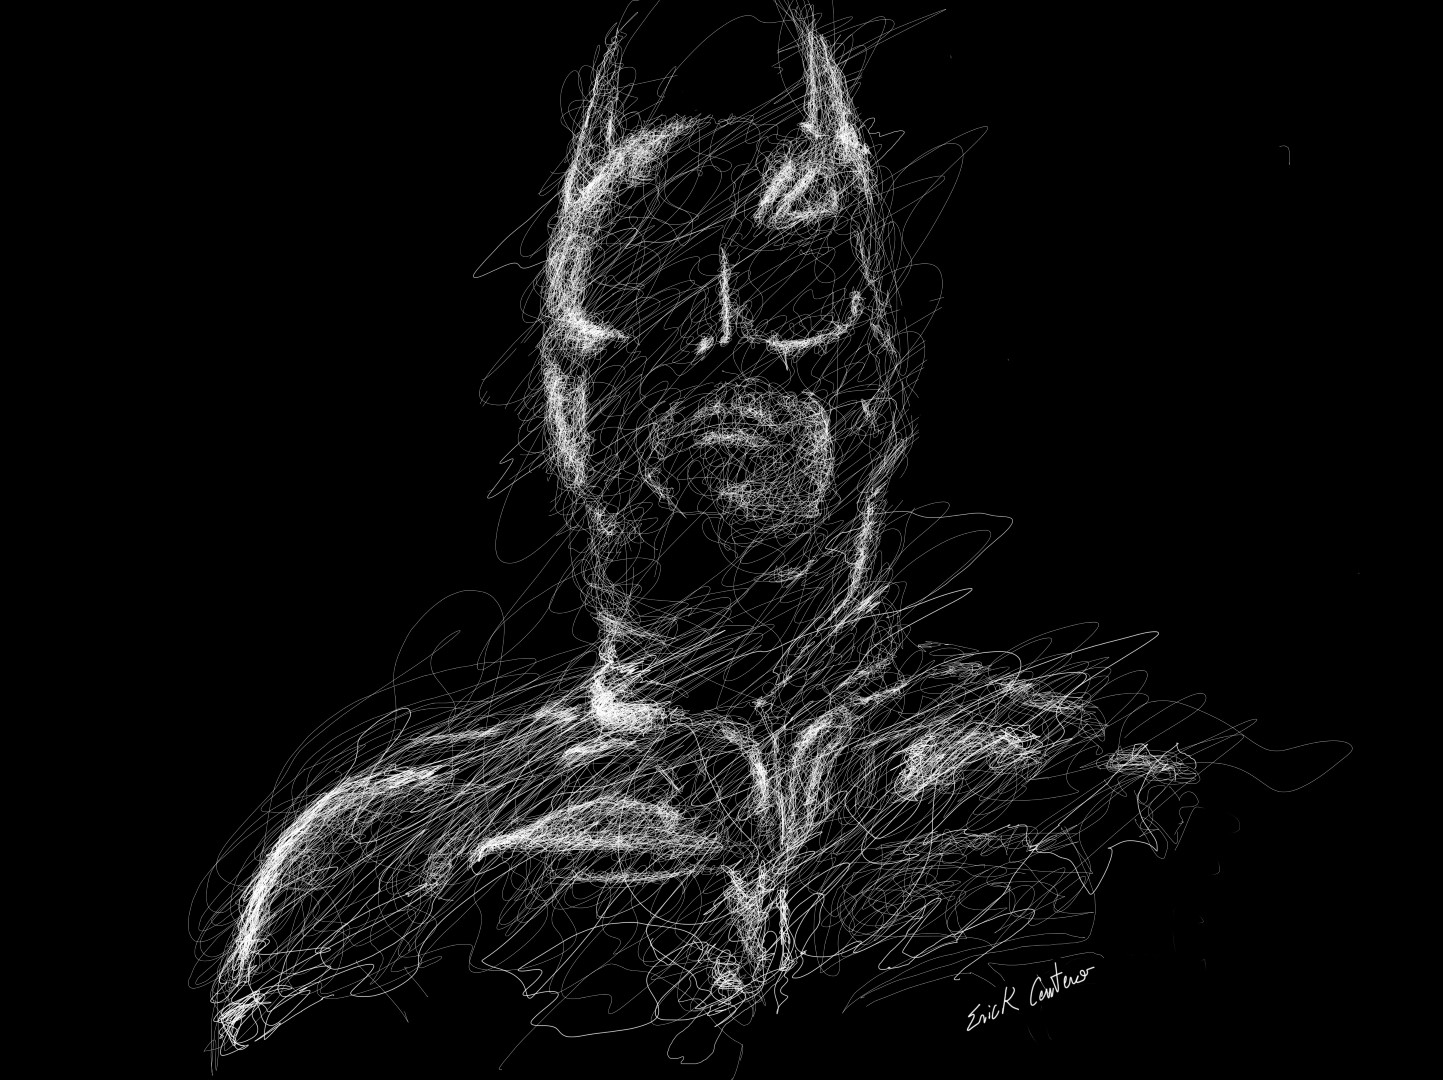 01-Batman-Christian-Bale-Erick-Centeno-Superheroes-Celebrities-and-Cartoons-Scribble-Drawings-www-designstack-co